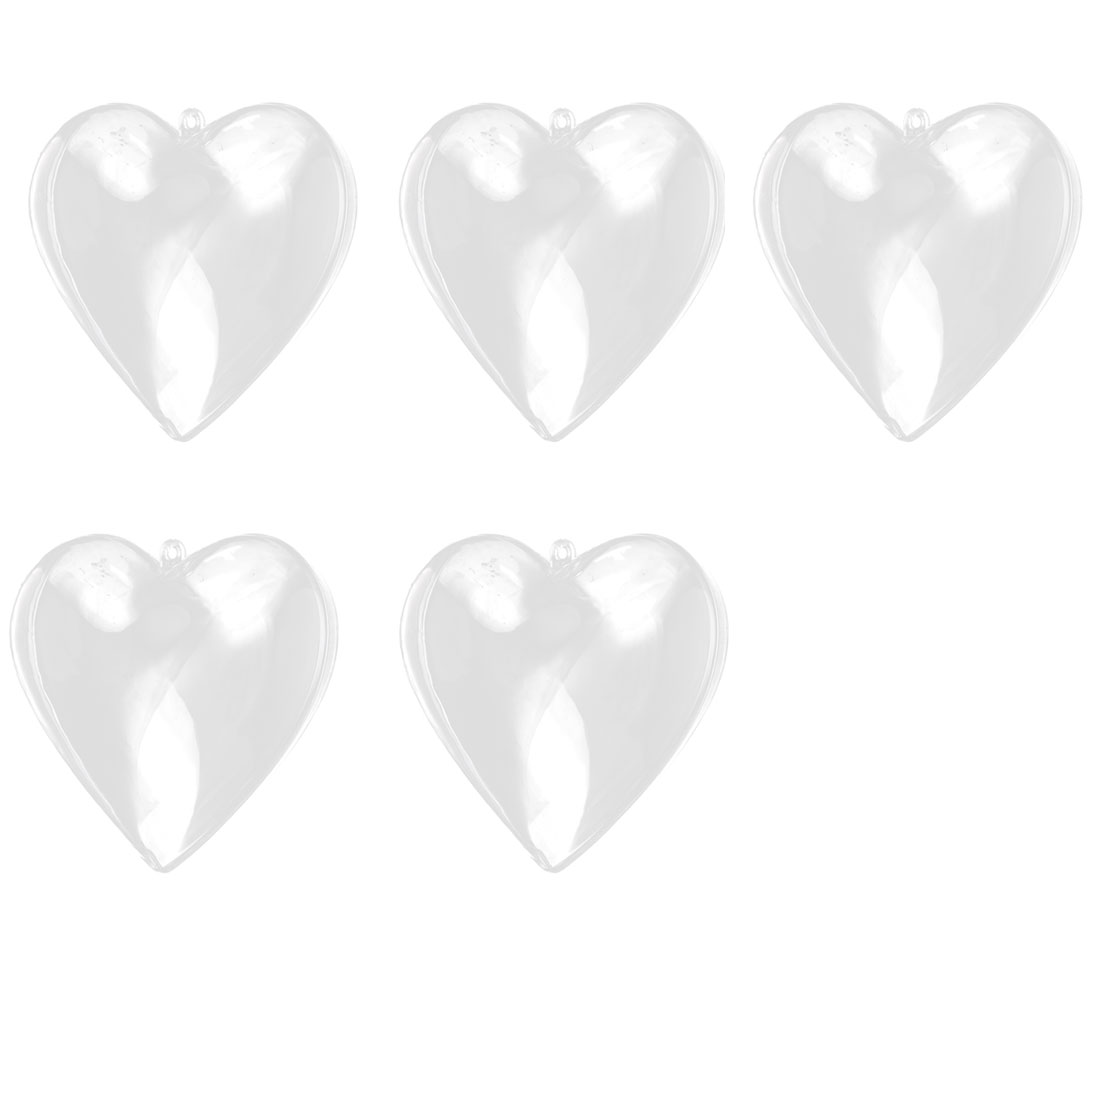 Home Plastic Heart Shaped Christmas Dangling DIY Craft Present Bauble Clear 5pcs